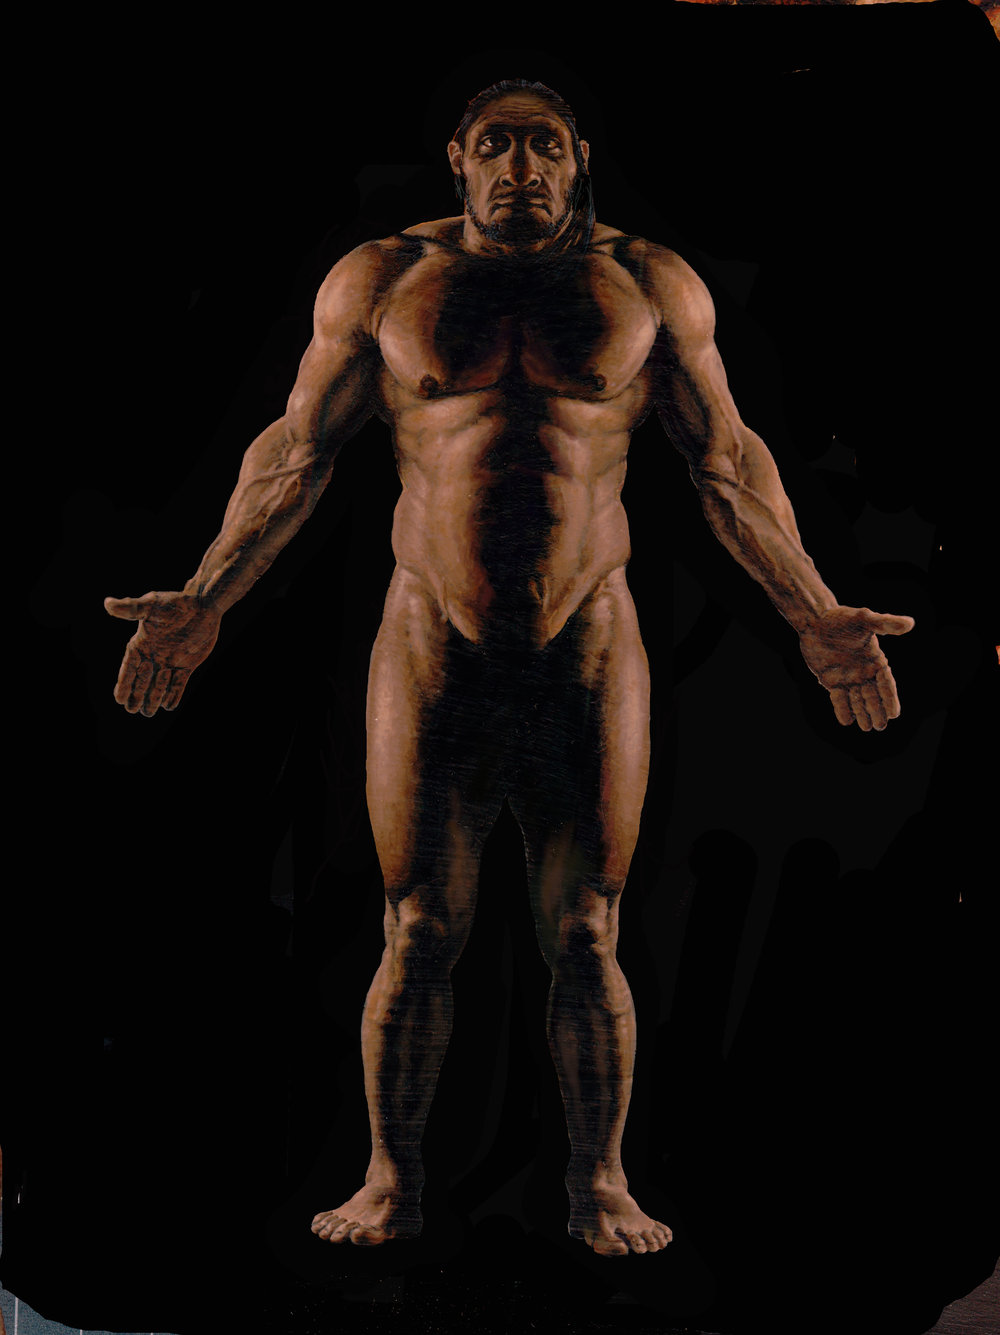 Neandertal male, based on La Ferressie 1, painted for National Geographic Magazine.